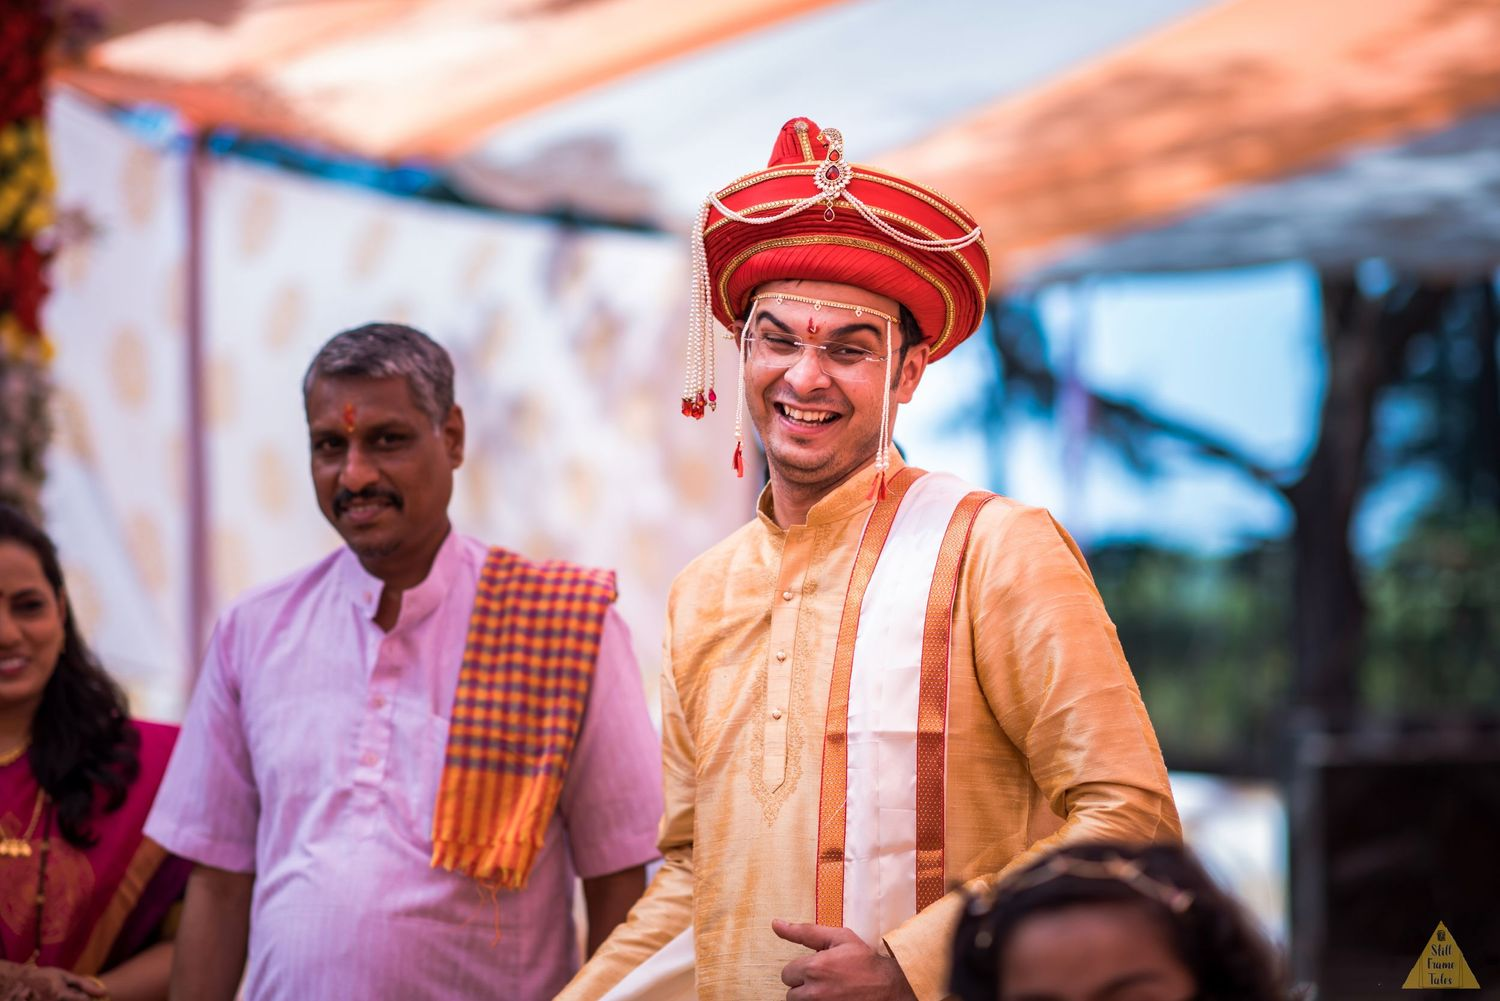 Groom's candid picture at his destination wedding